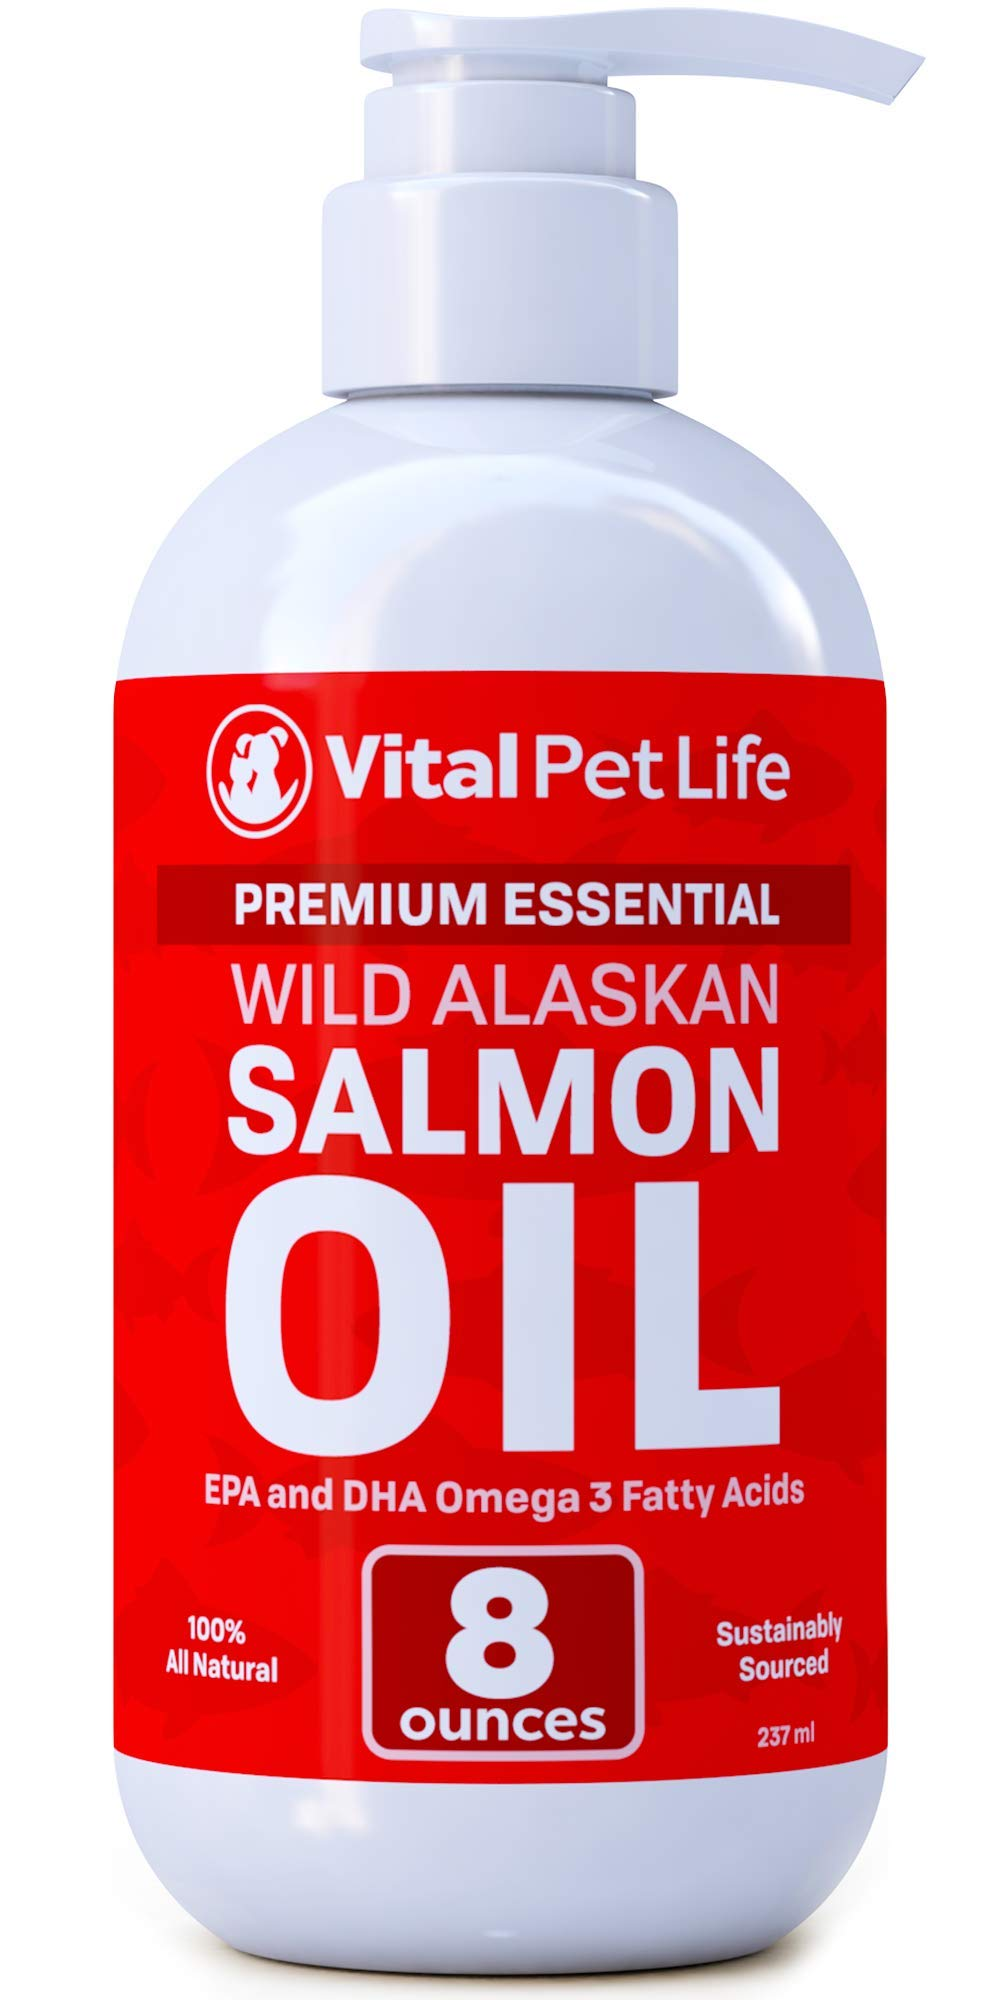 Salmon Oil for Dogs, Cats, and Horses, Fish Oil Omega 3 Food Supplement for Pets, Wild Alaskan 100% All Natural, Helps Dry Skin, Allergies, and Joints, Promotes Healthy Coat, Helps Inflammation, 8 oz by Vital Pet Life